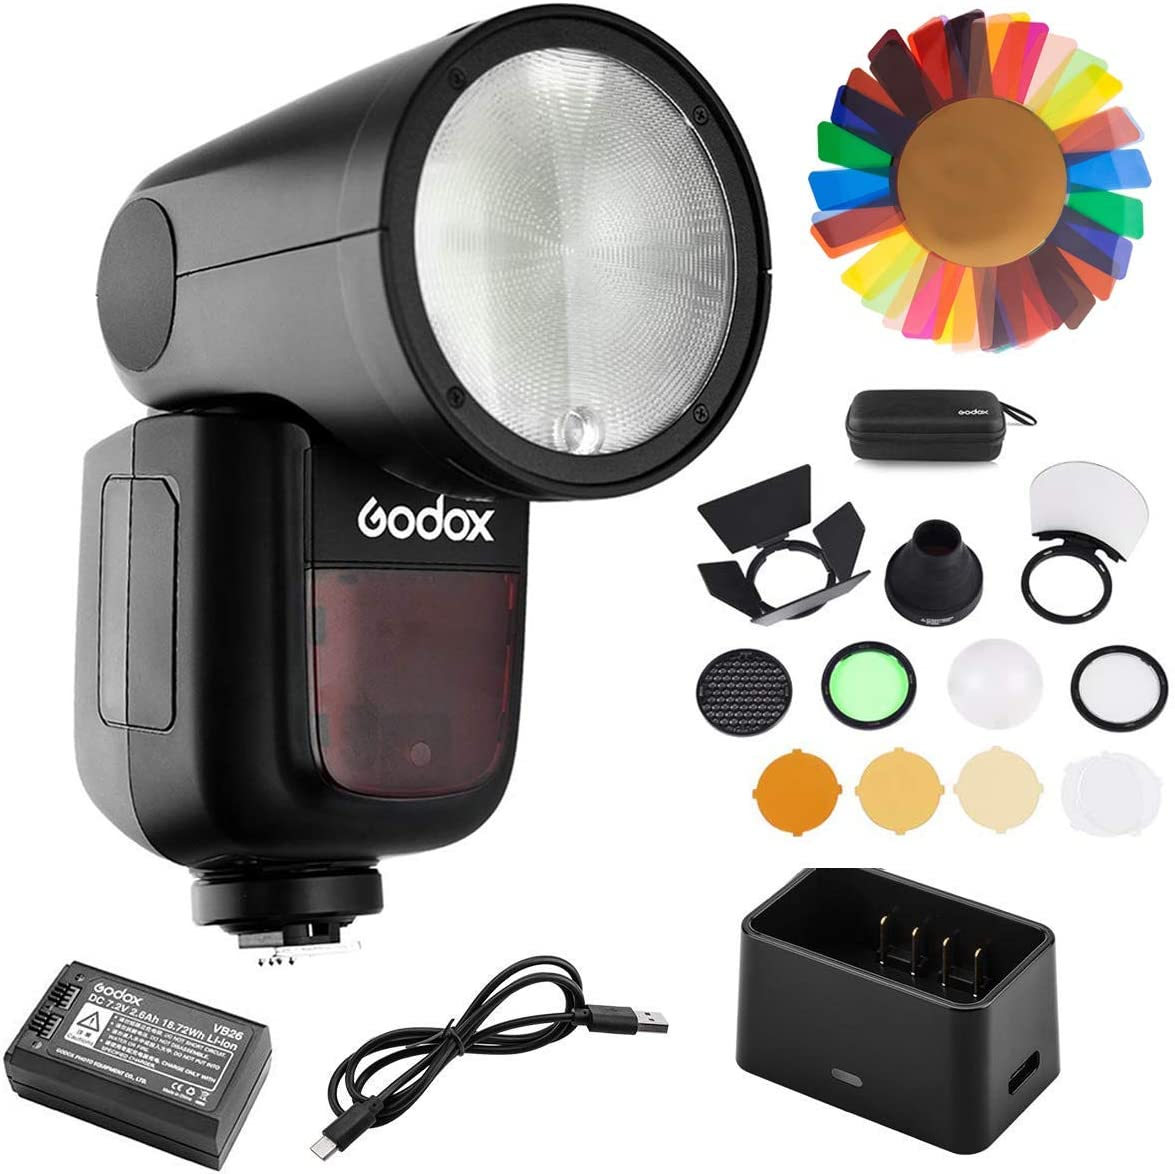 Godox V1-O Flash for Olympus with Godox AK-R1 and PERGEAR Color Filters Kit 76Ws 2.4G TTL Round Head Flash Speedlight 1.5S Recycle Time 10 Level LED Modeling La 1//8000 HSS 2600mAh Lithimu Battery